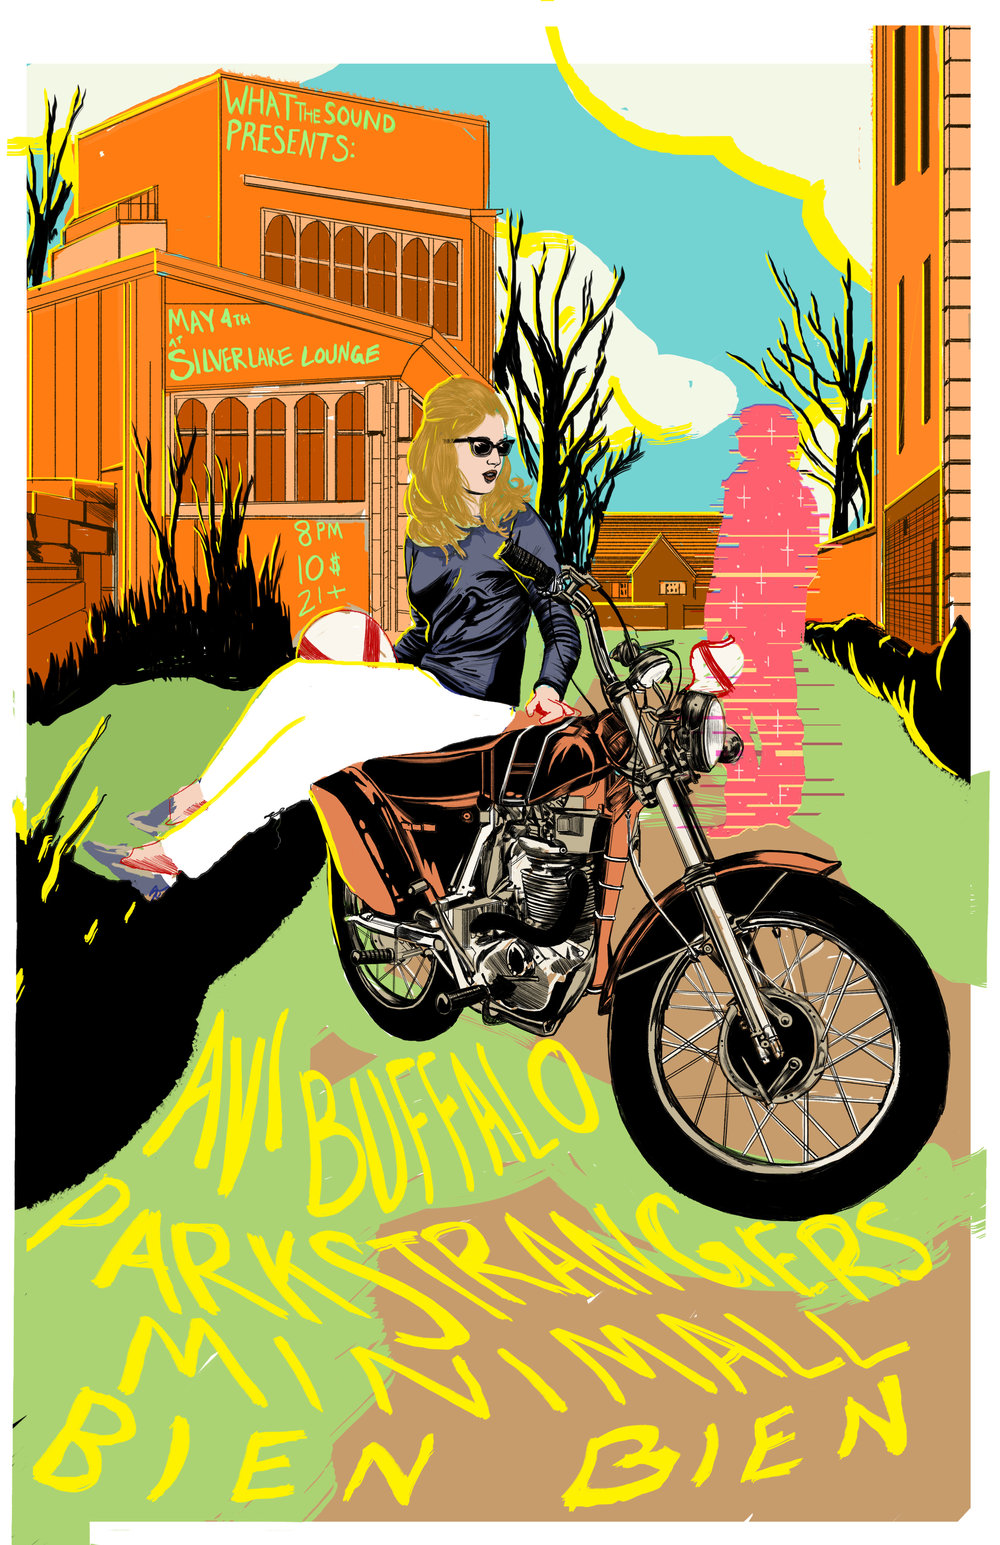 Avi Buffalo / Park Strangers / Minimall / Bien Bien   - Artwork by Nicole Rifkin   May 4th, 2017 at Silverlake LoungeTix: $10 - bit.ly/May4SilvLounge